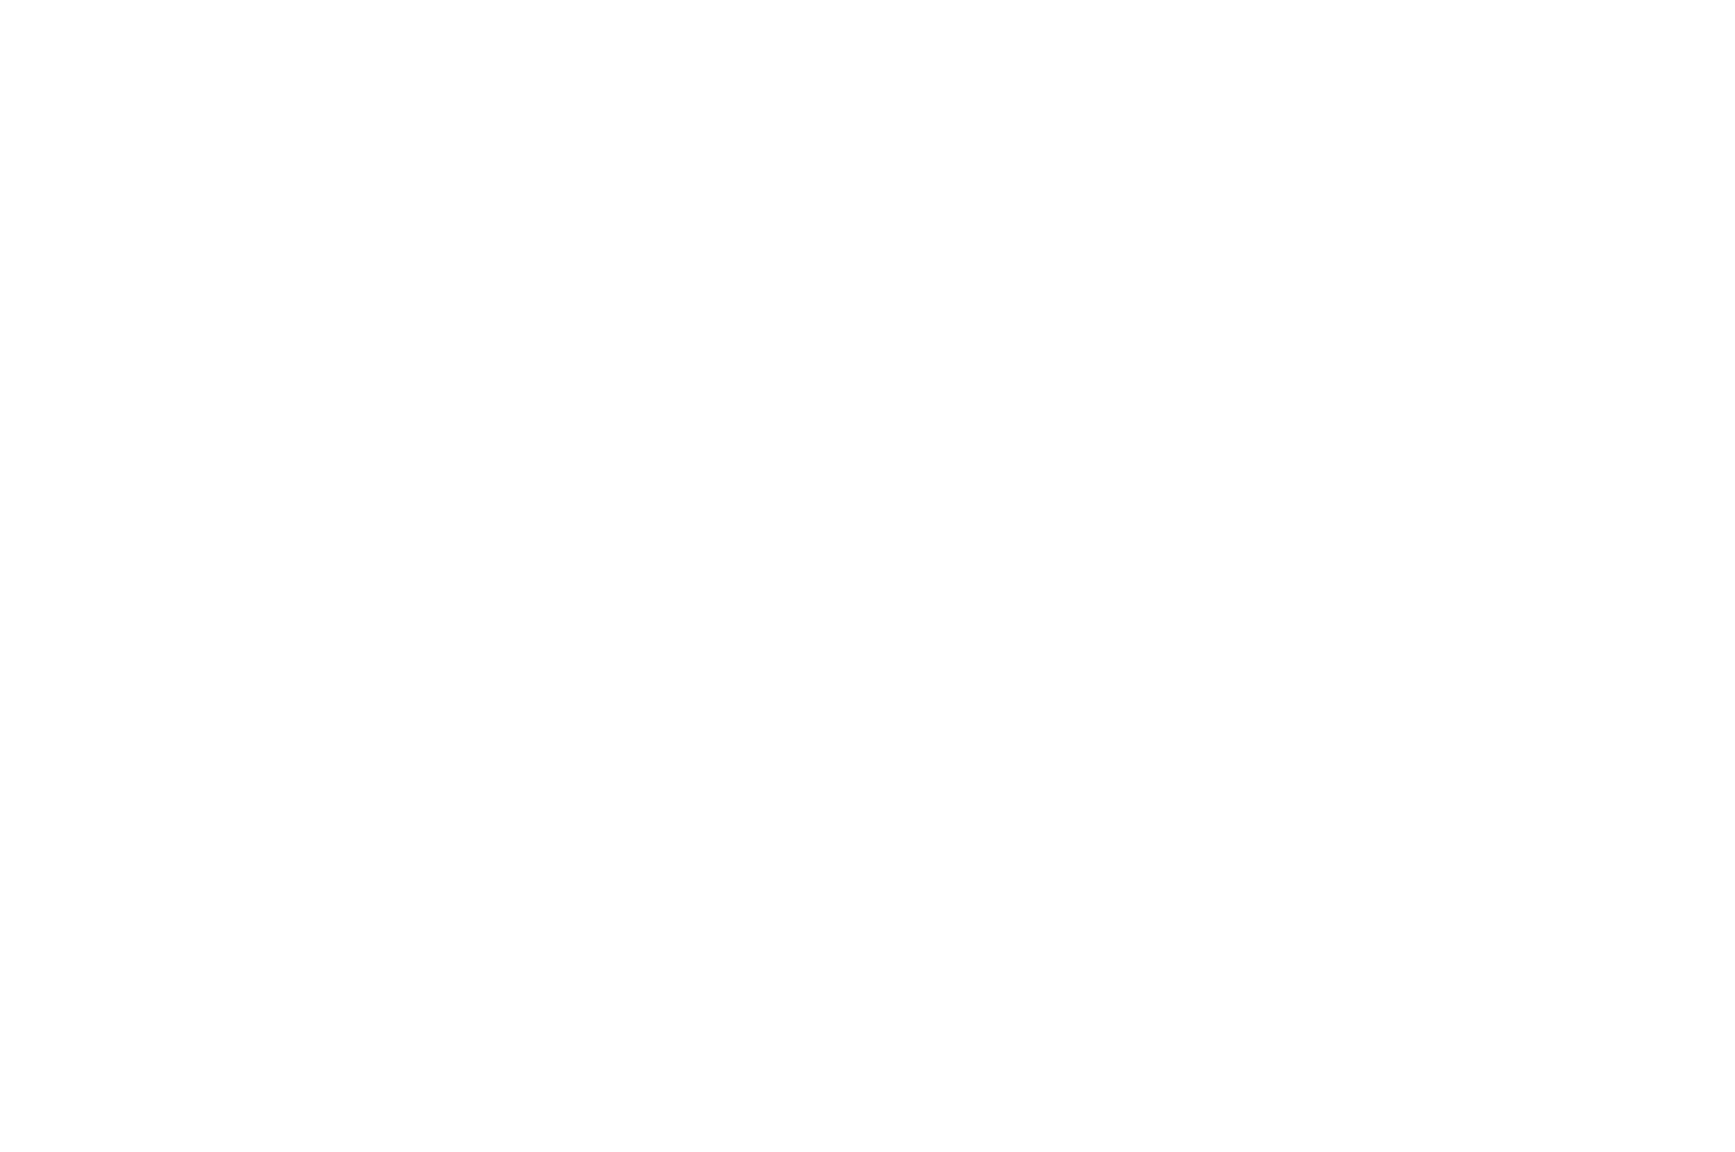 HONORABLE MENTION - Reale Film Festival - Monthly Awards - 2020